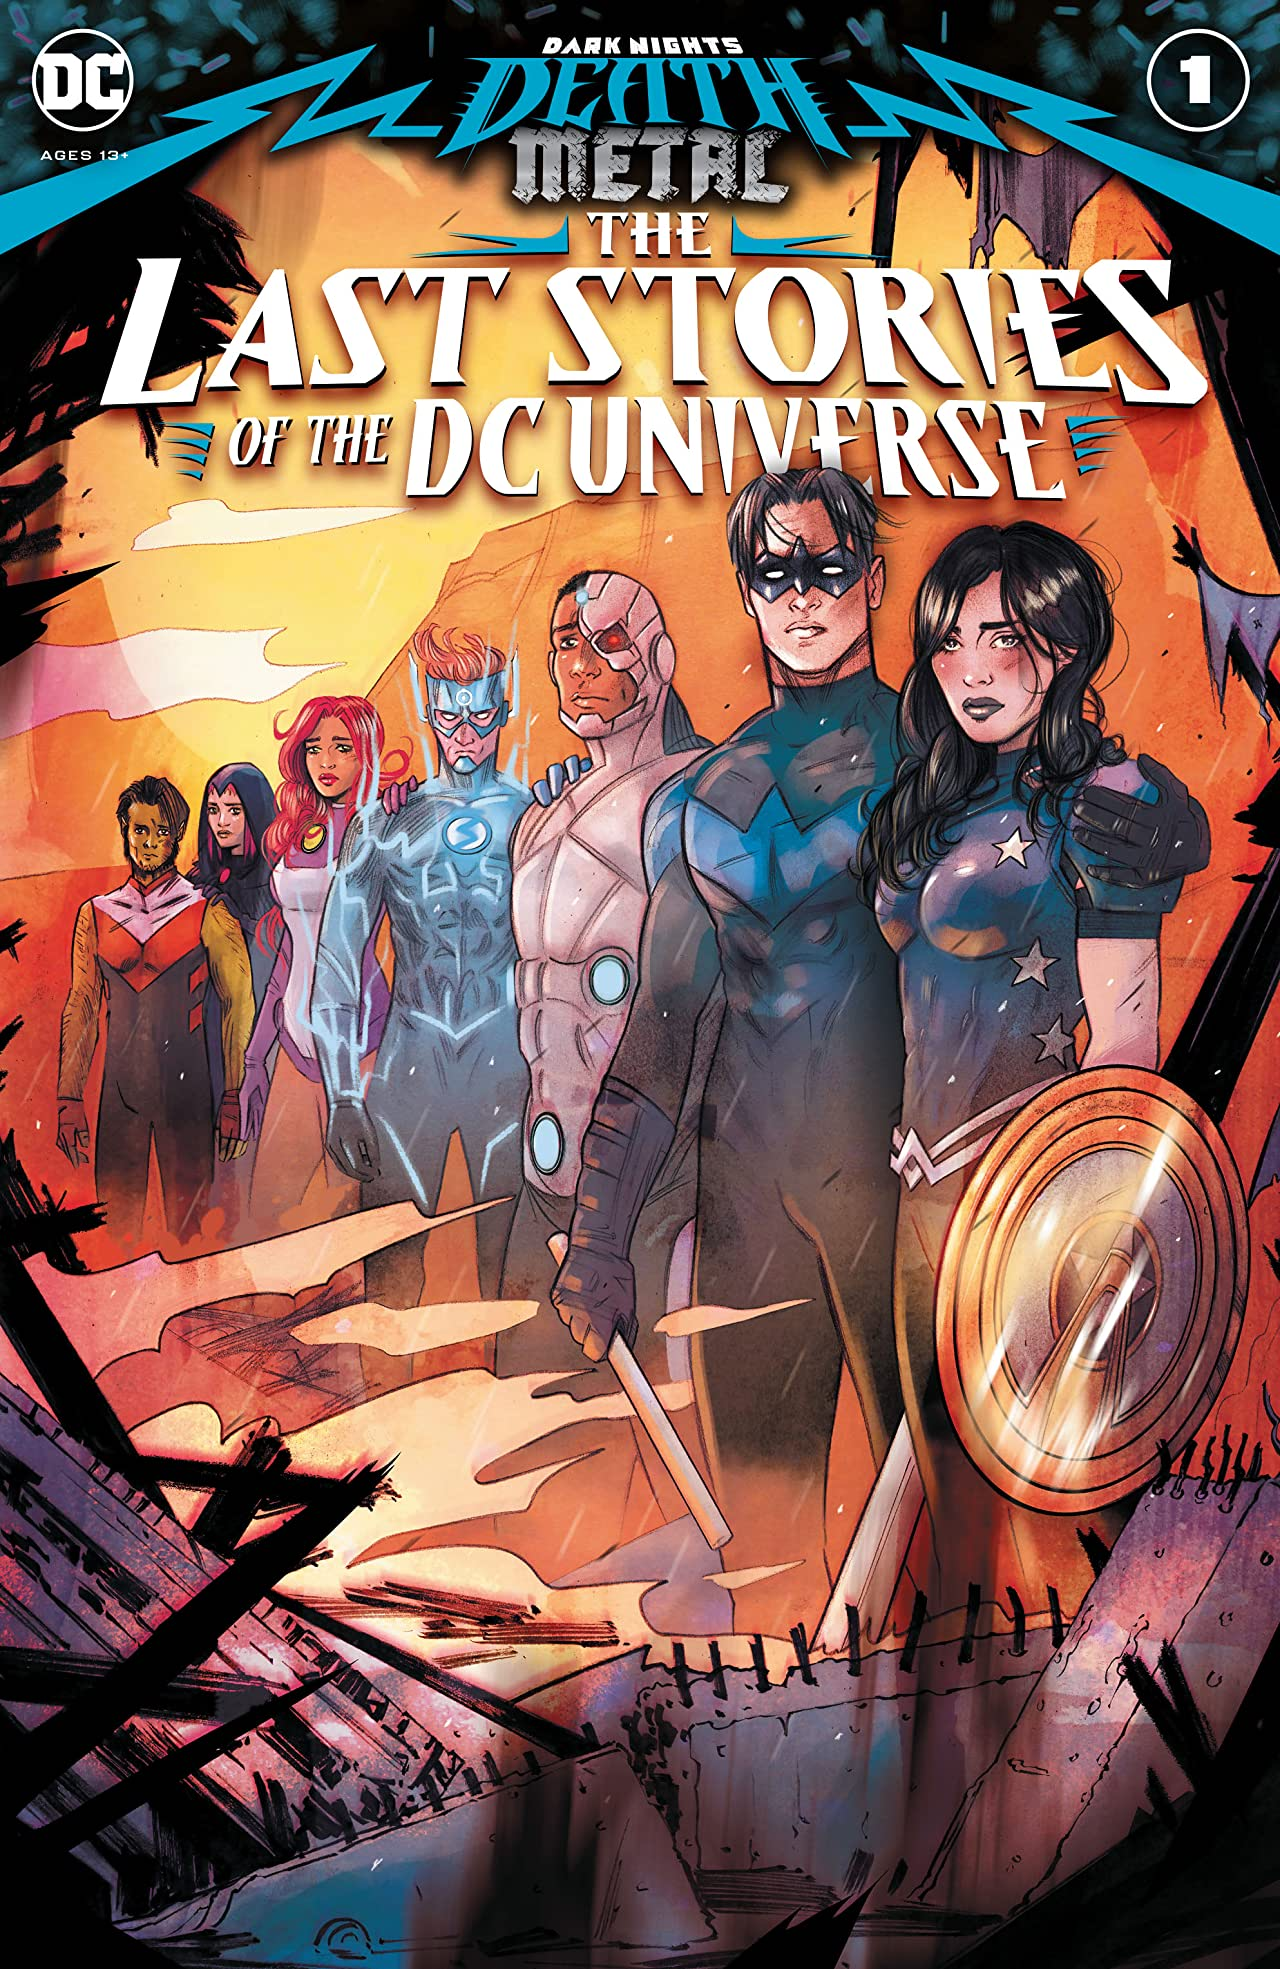 Dark Nights: Death Metal: The Last Stories of the DC Universe (2020-) No.1